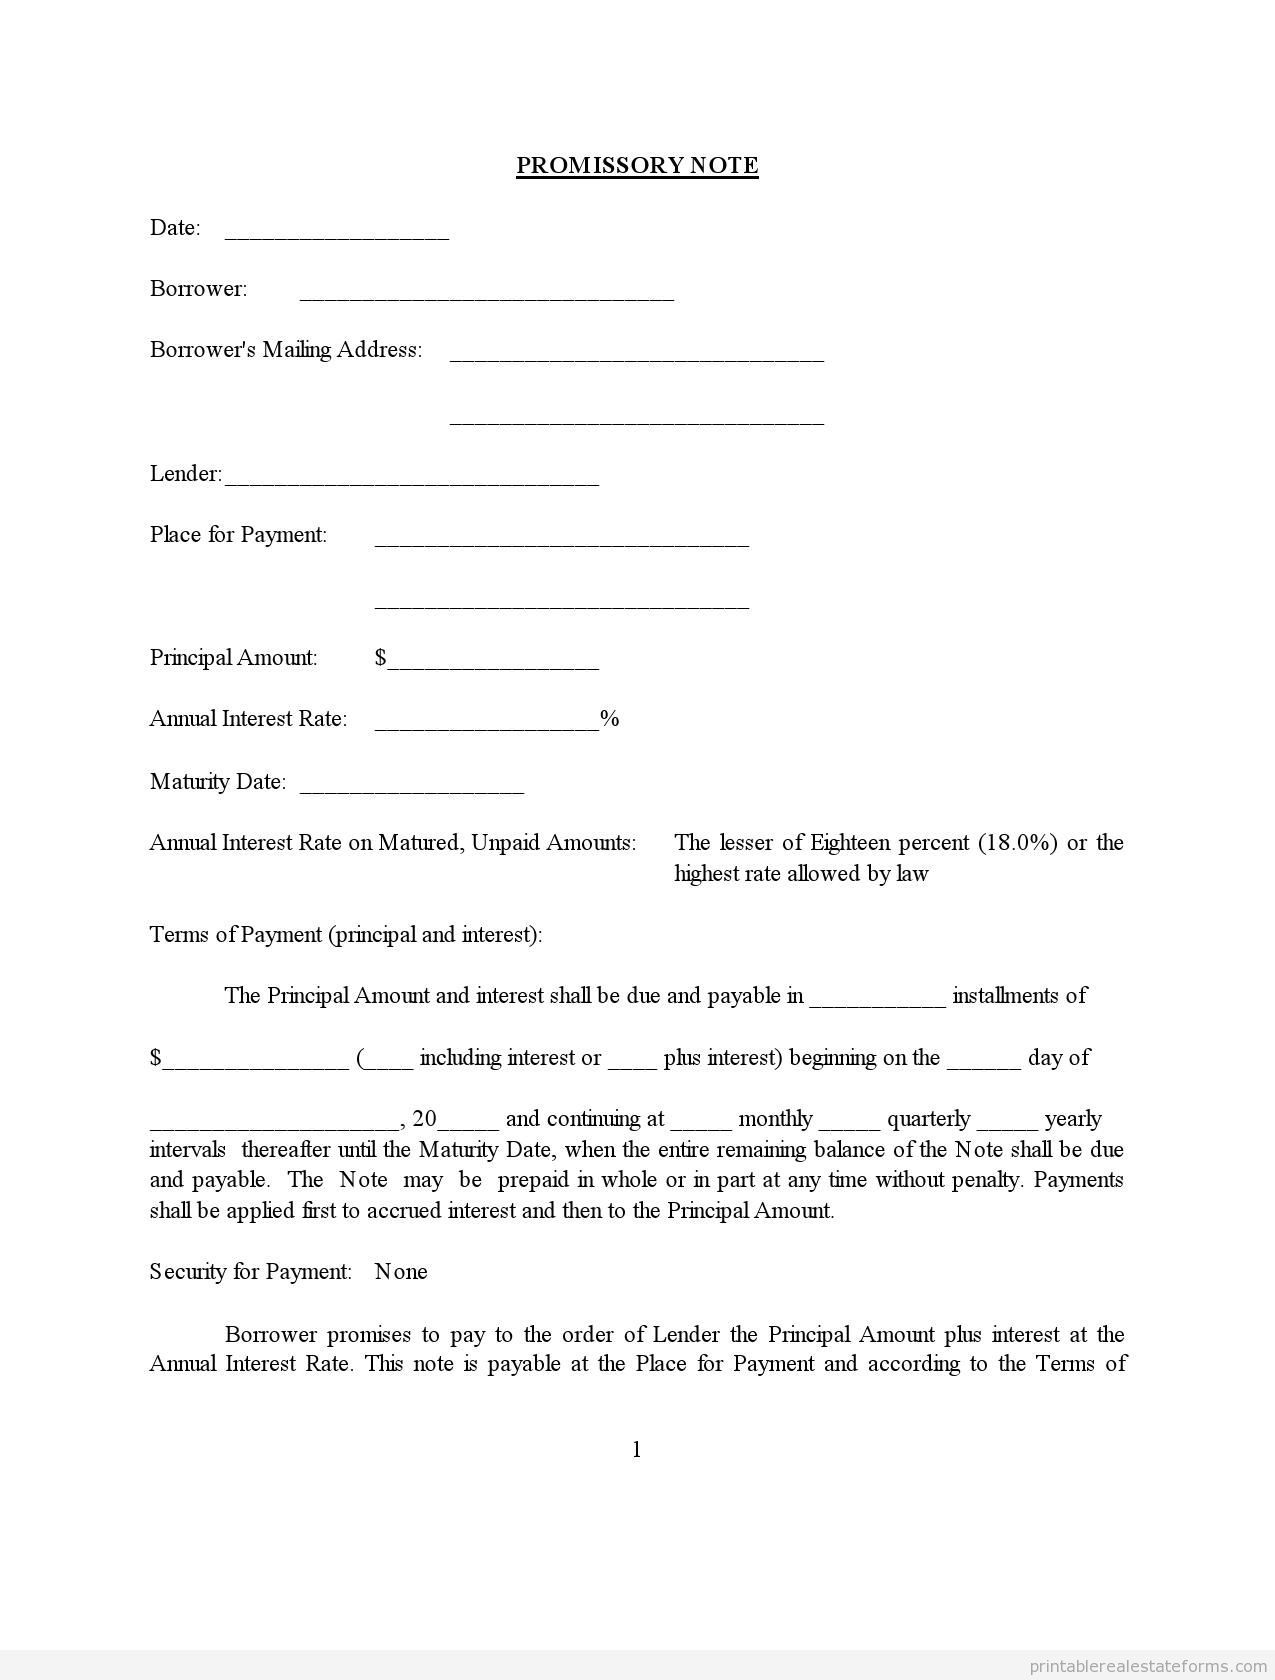 Promissory Note Assorted Legal Forms Legal Forms Real Estate